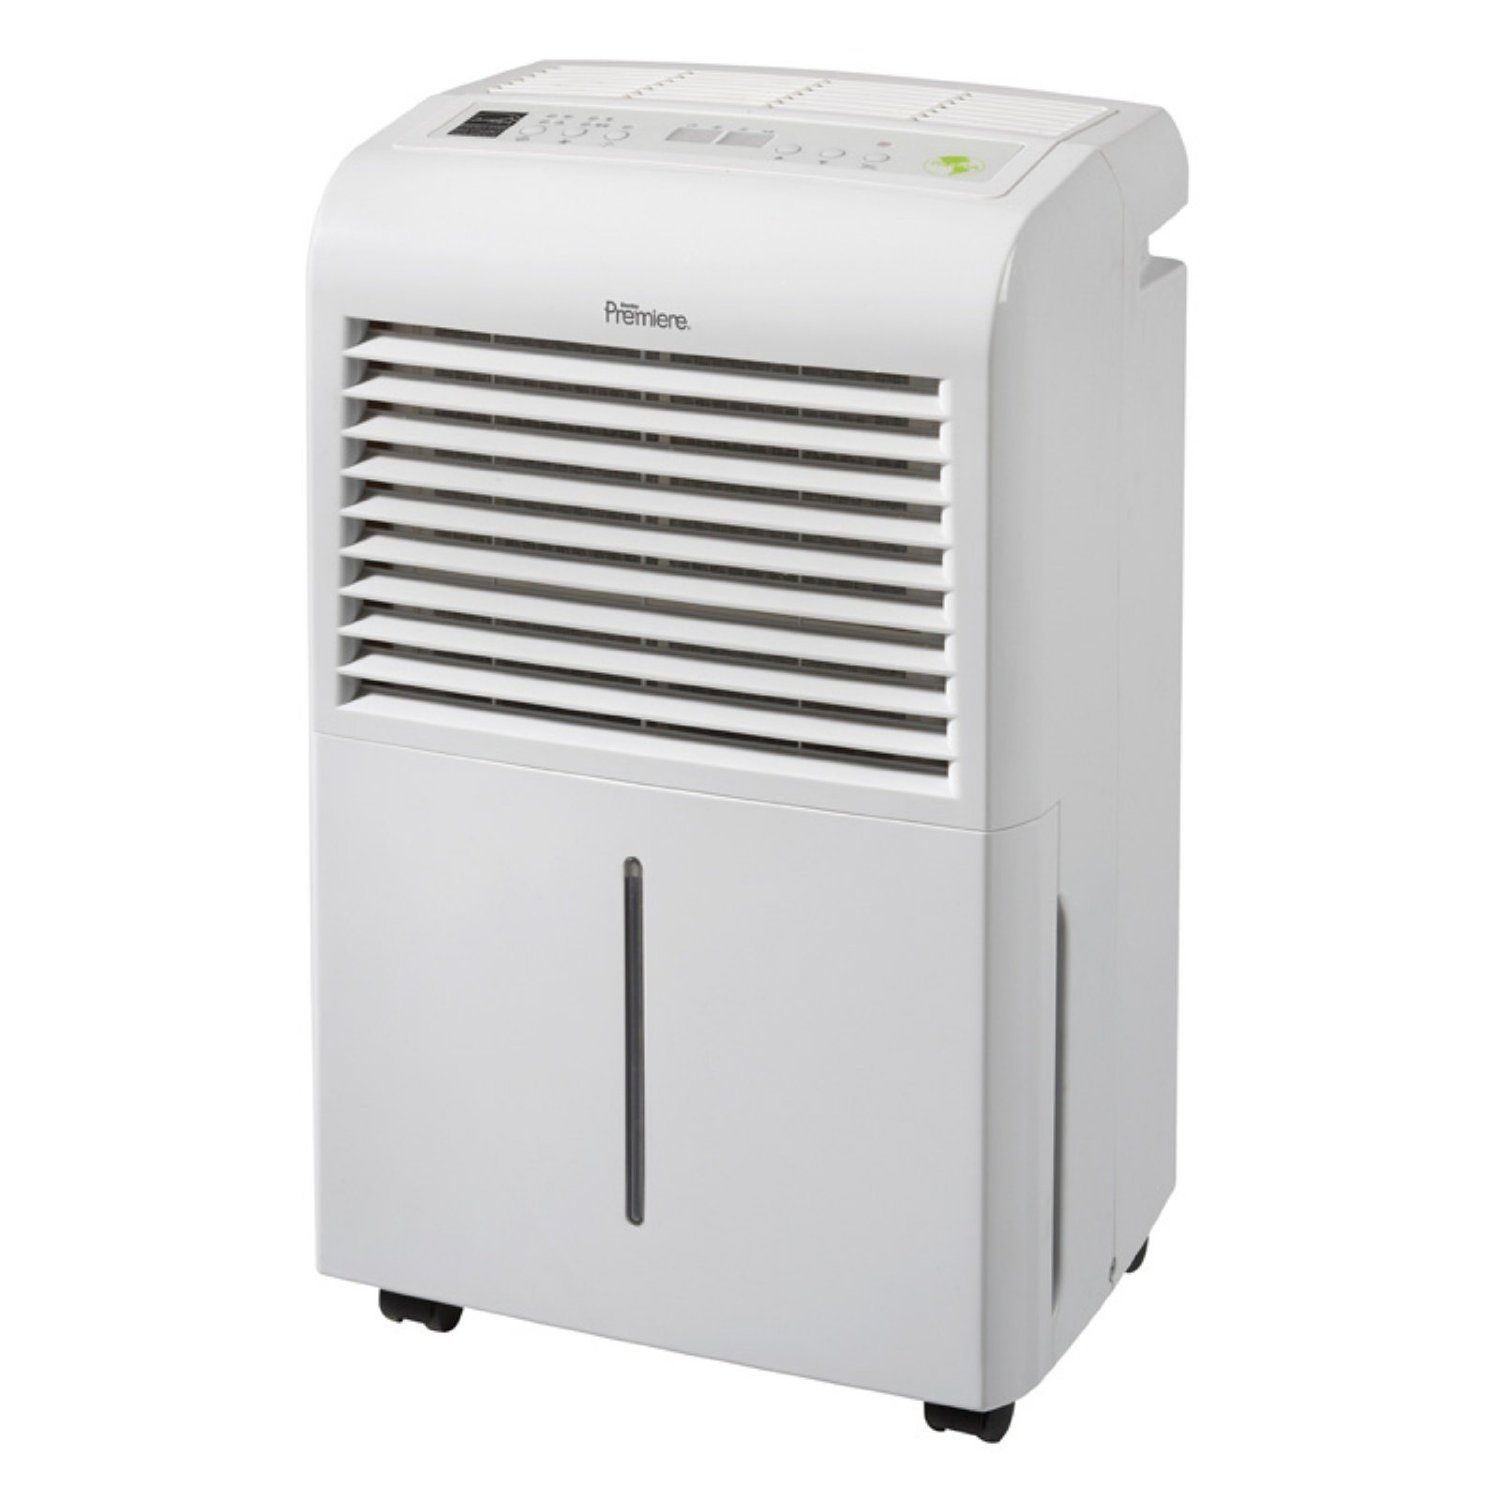 Rv Dehumidifier Reviews Read This Before Buying One Dehumidifiers Portable Vacuum Home Appliances